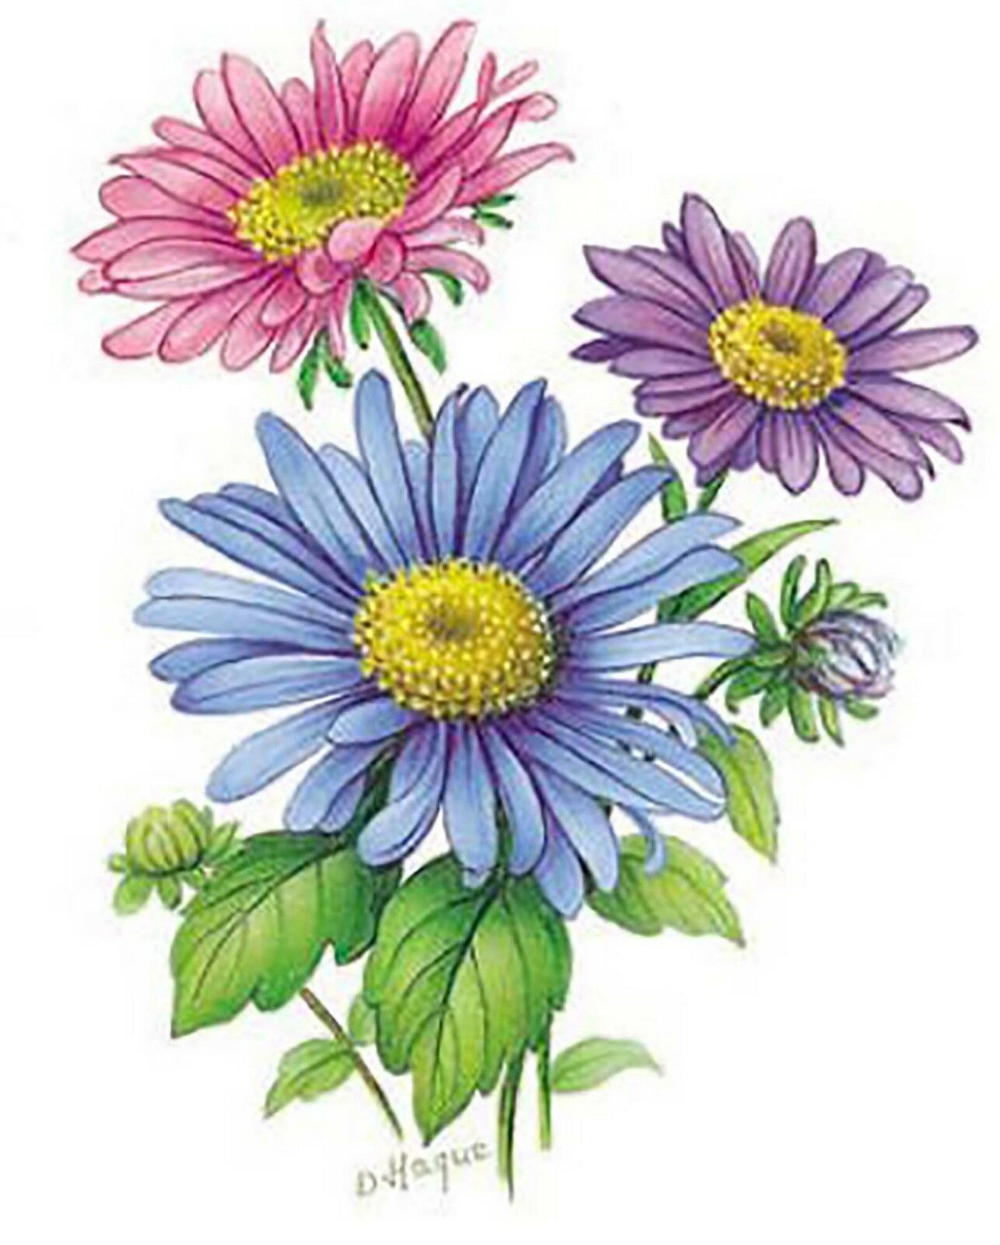 Details about Flower of the Month September Asters Select